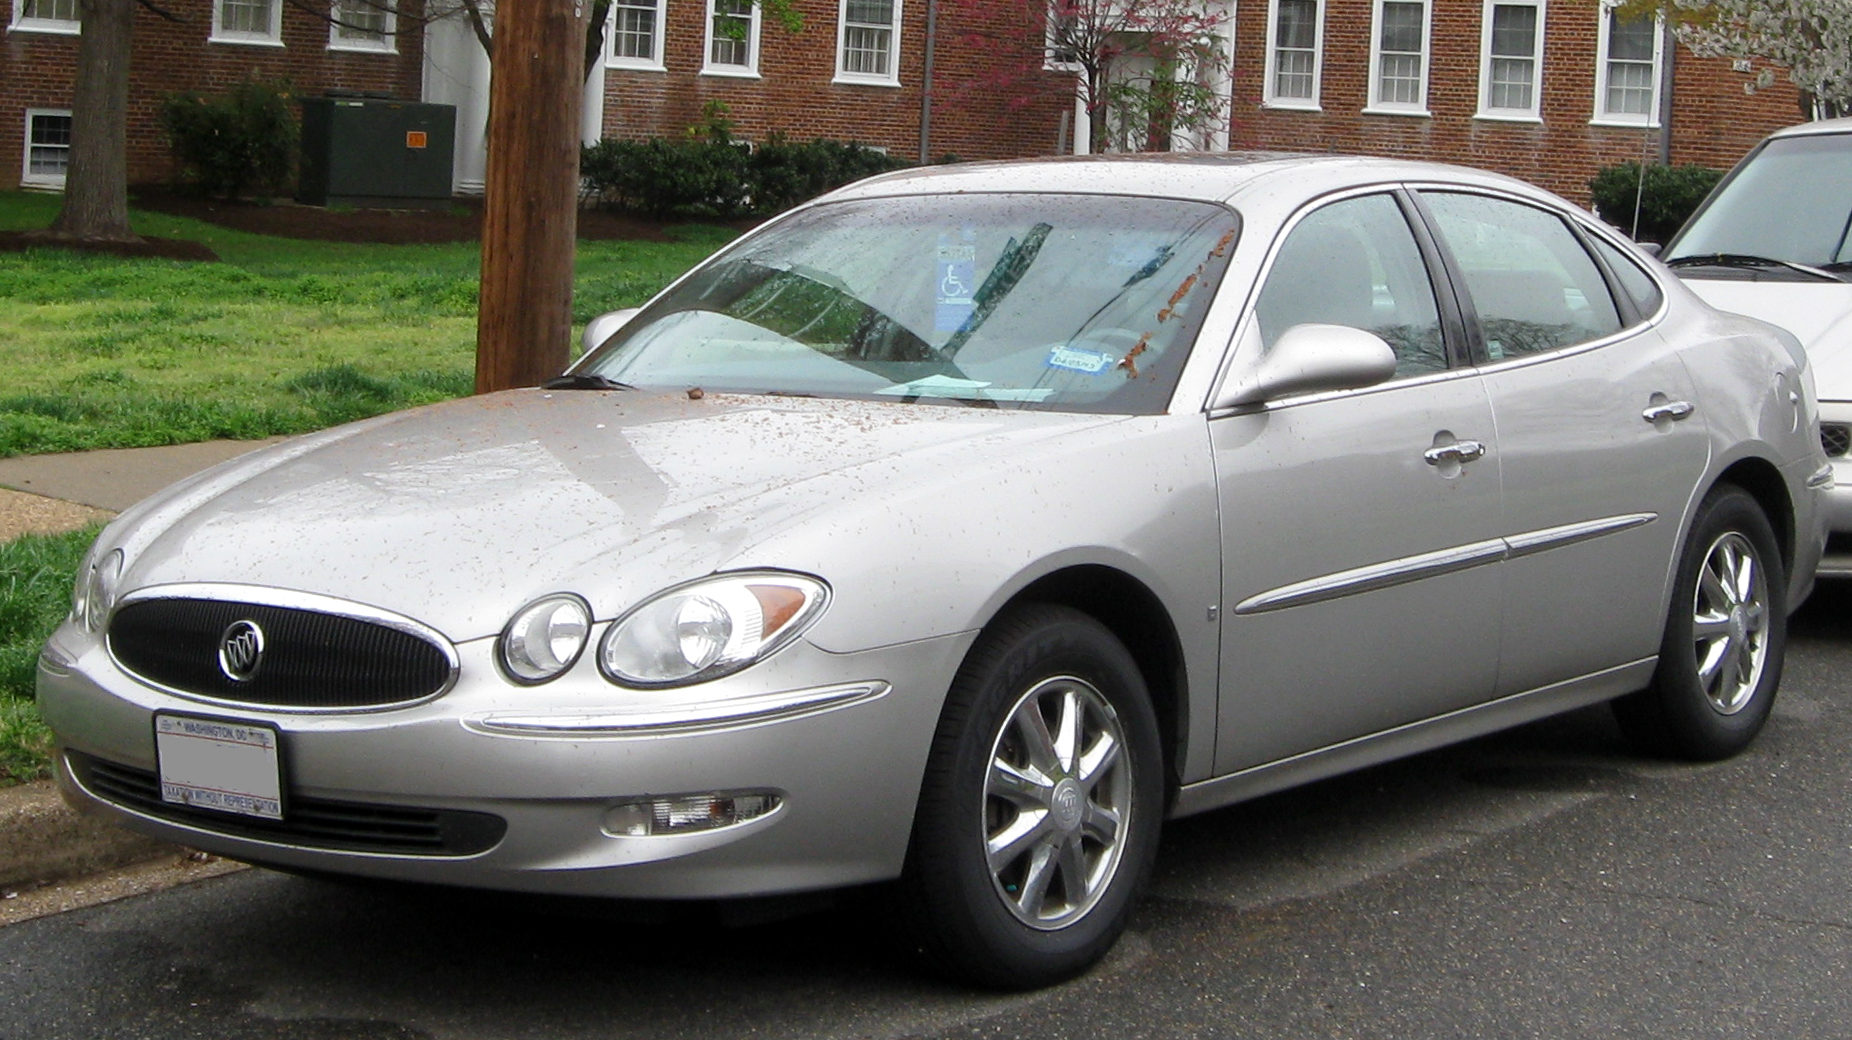 2005 Buick Lacrosse Information And Photos Zombiedrive